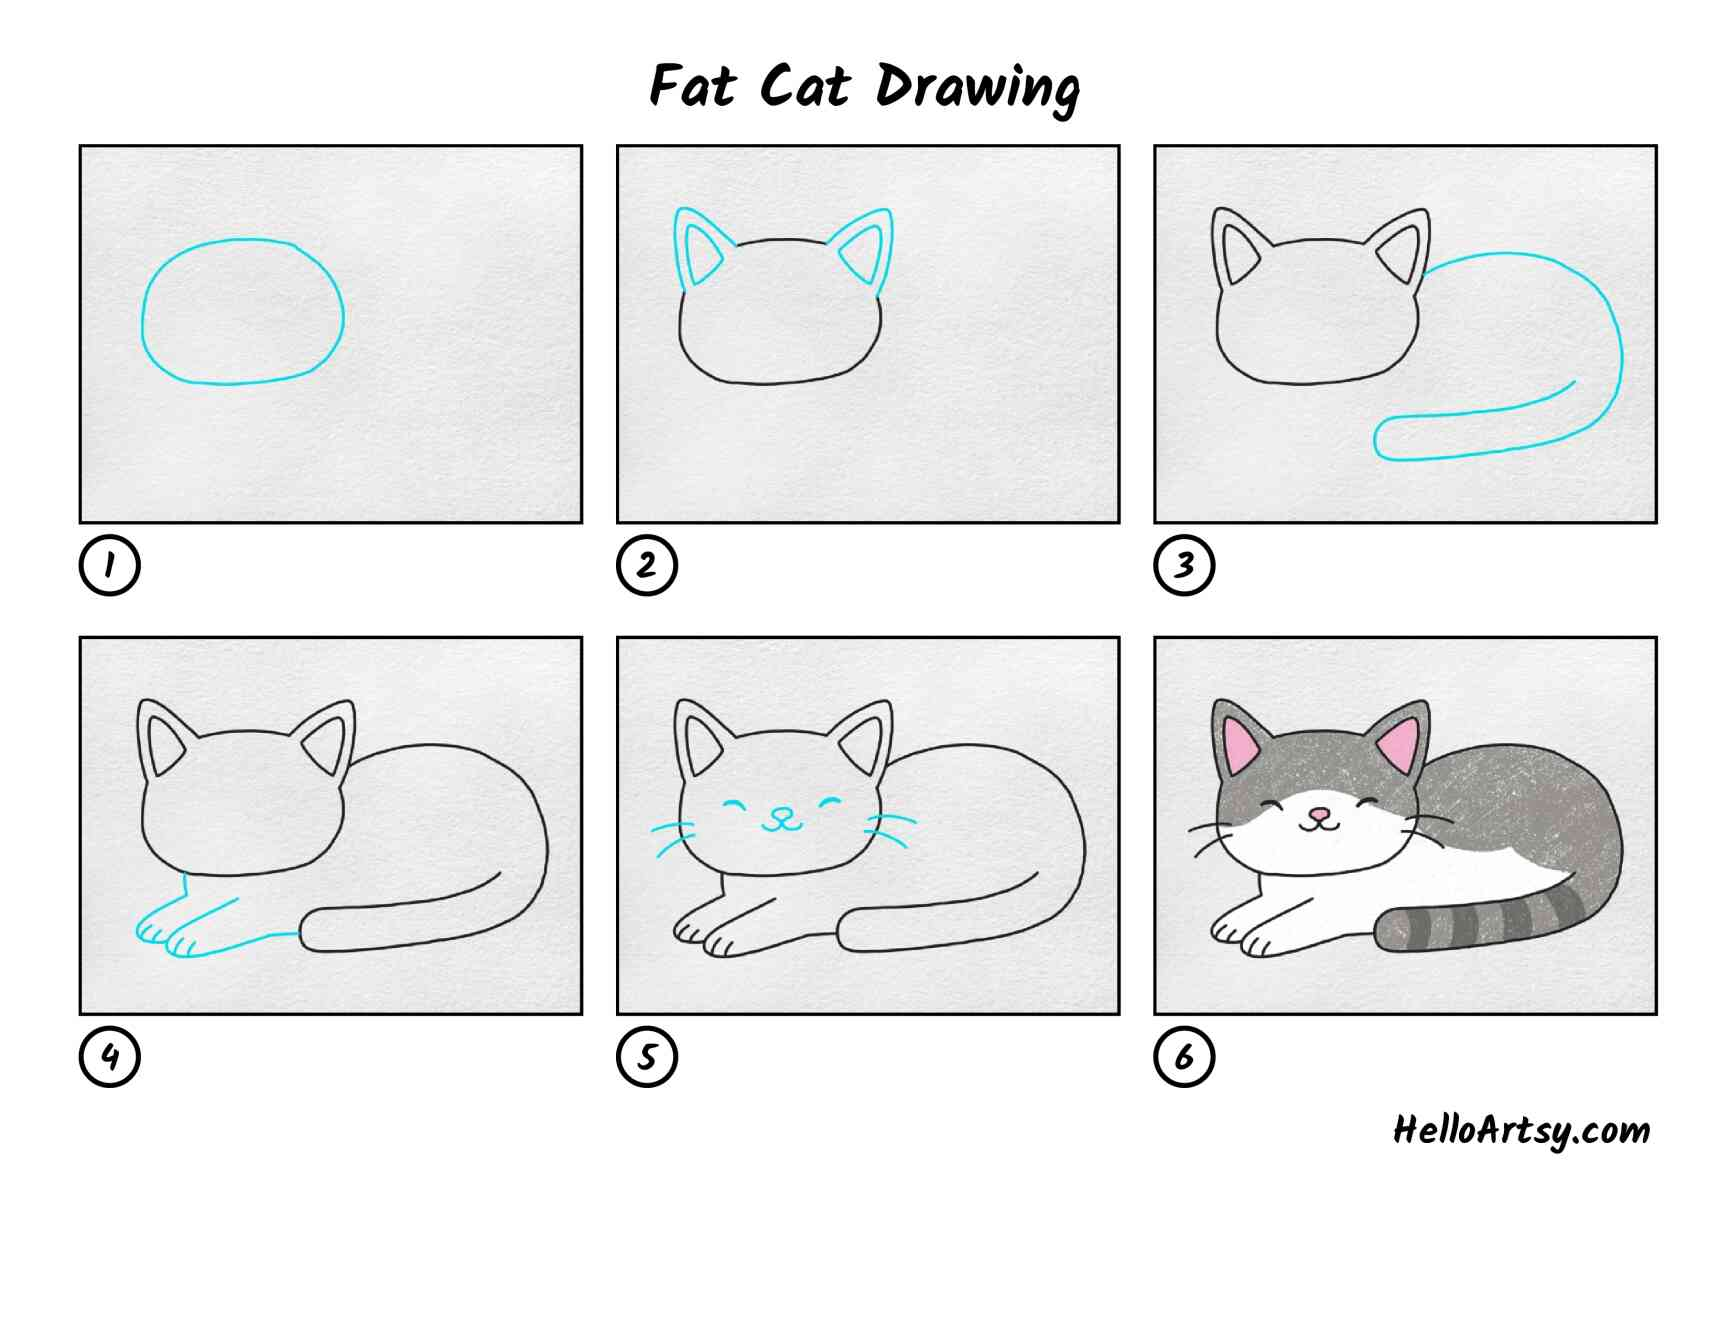 Fat Cat Drawing: All Steps